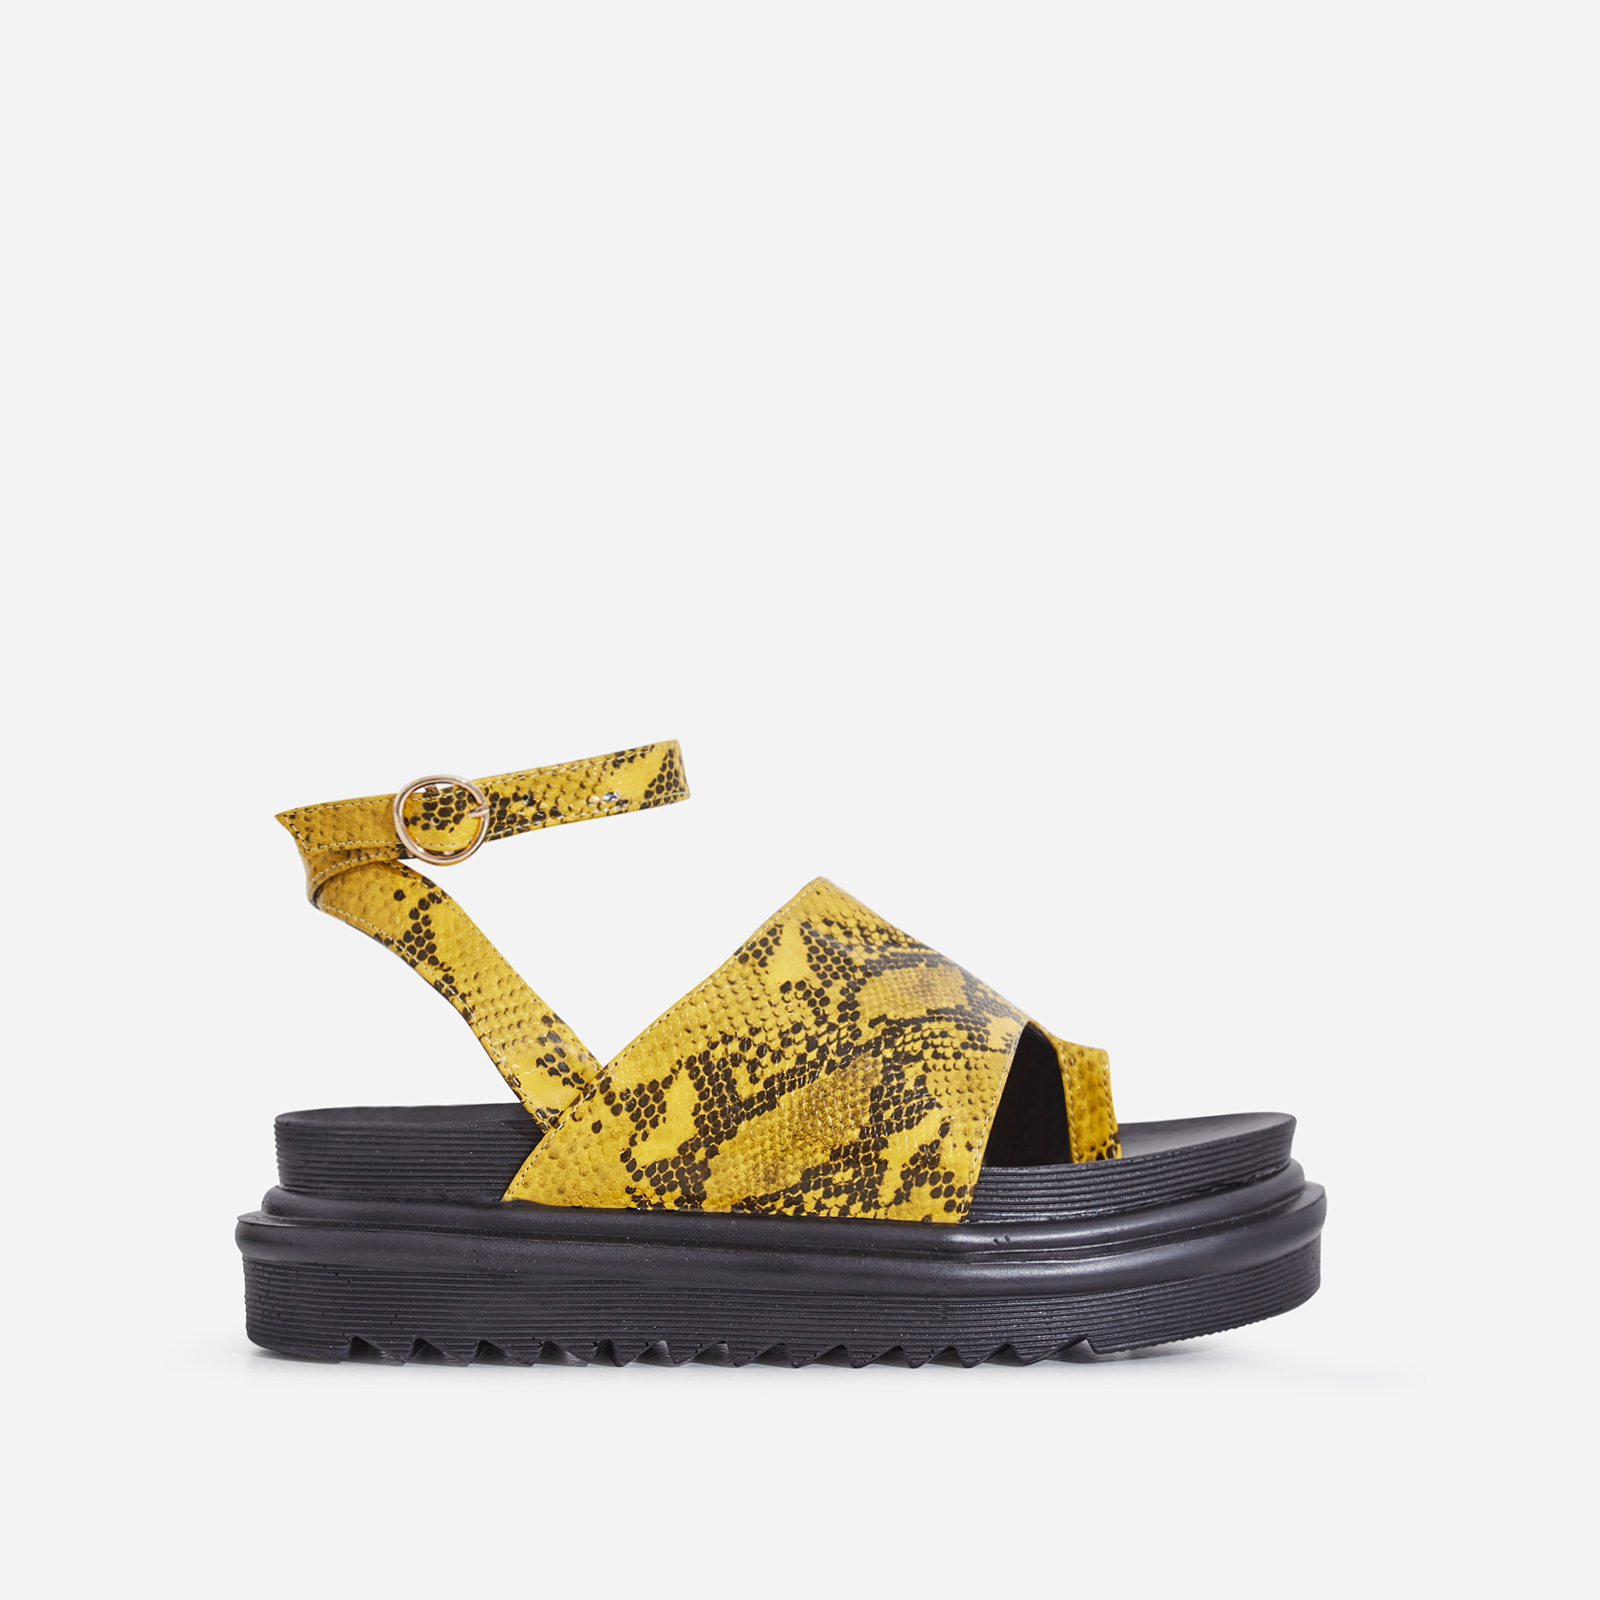 Ruth Chunky Sole Sandal In Yellow Snake Print Faux Leather